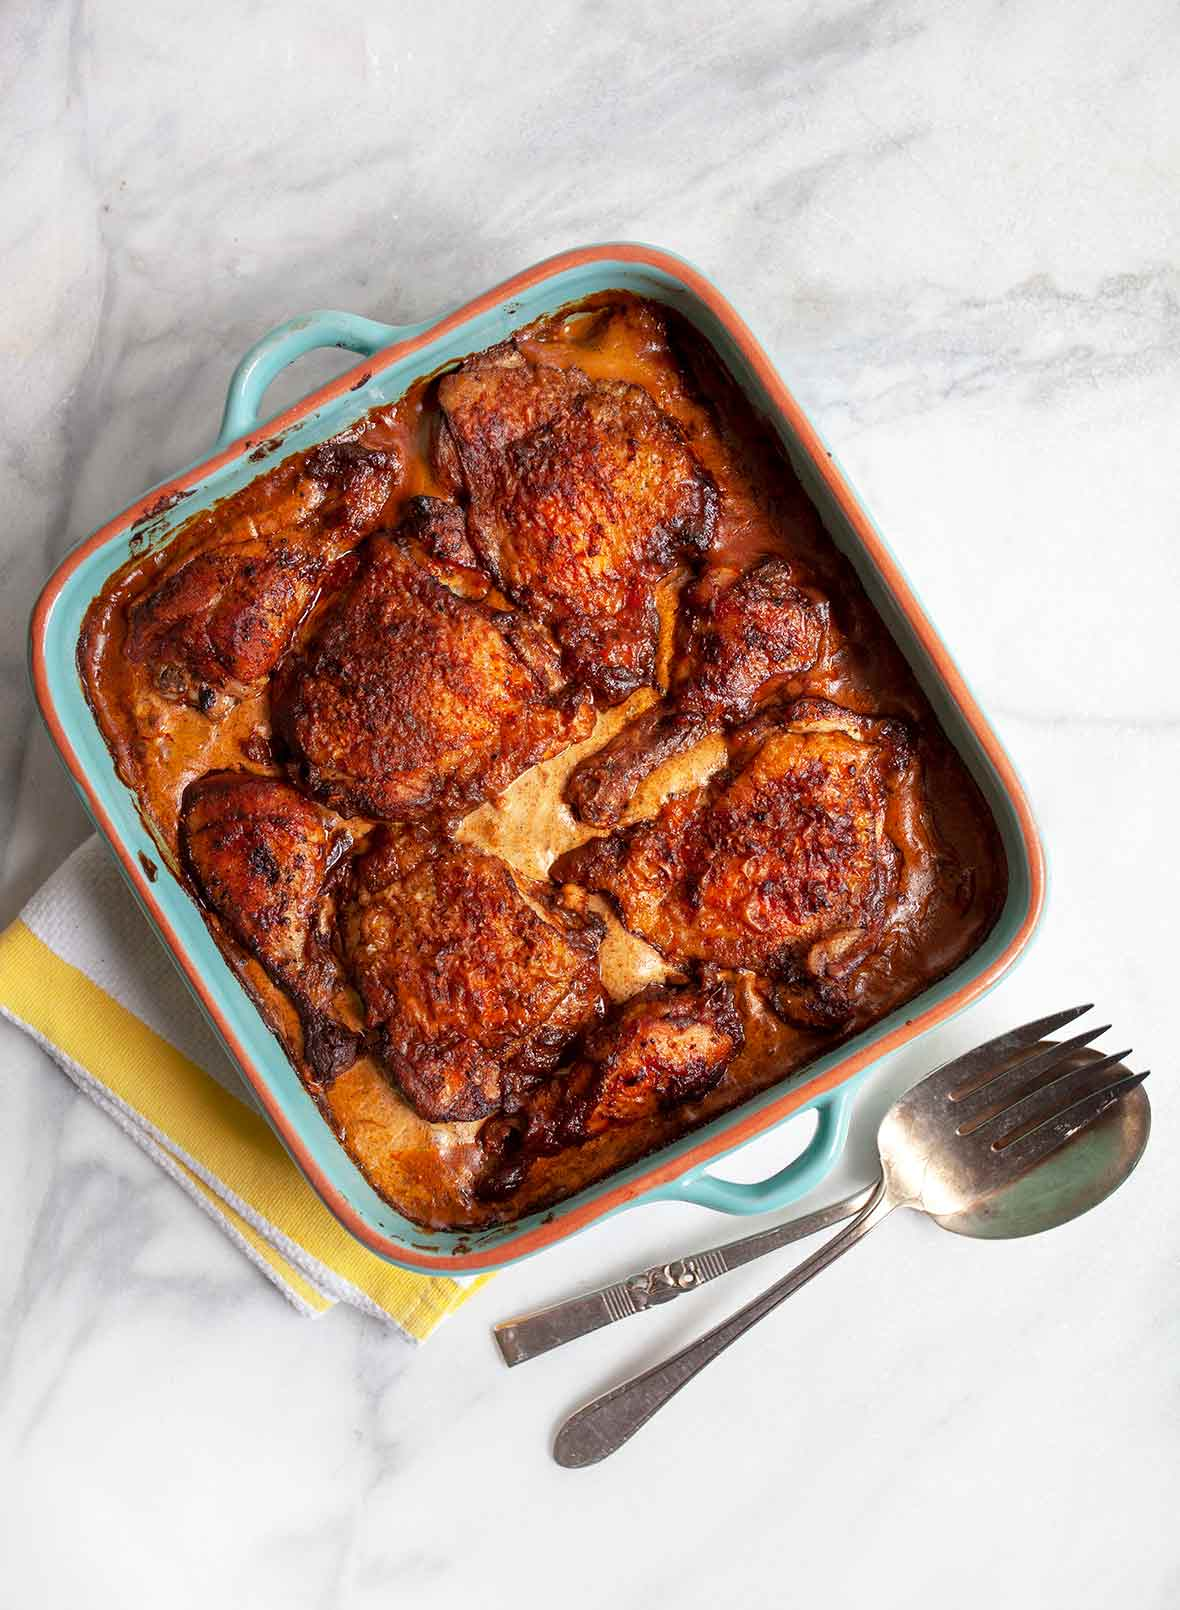 A blue earthenware dish with chicken paprikash--chicken thighs in a creamy paprika sauce, on a marble counter